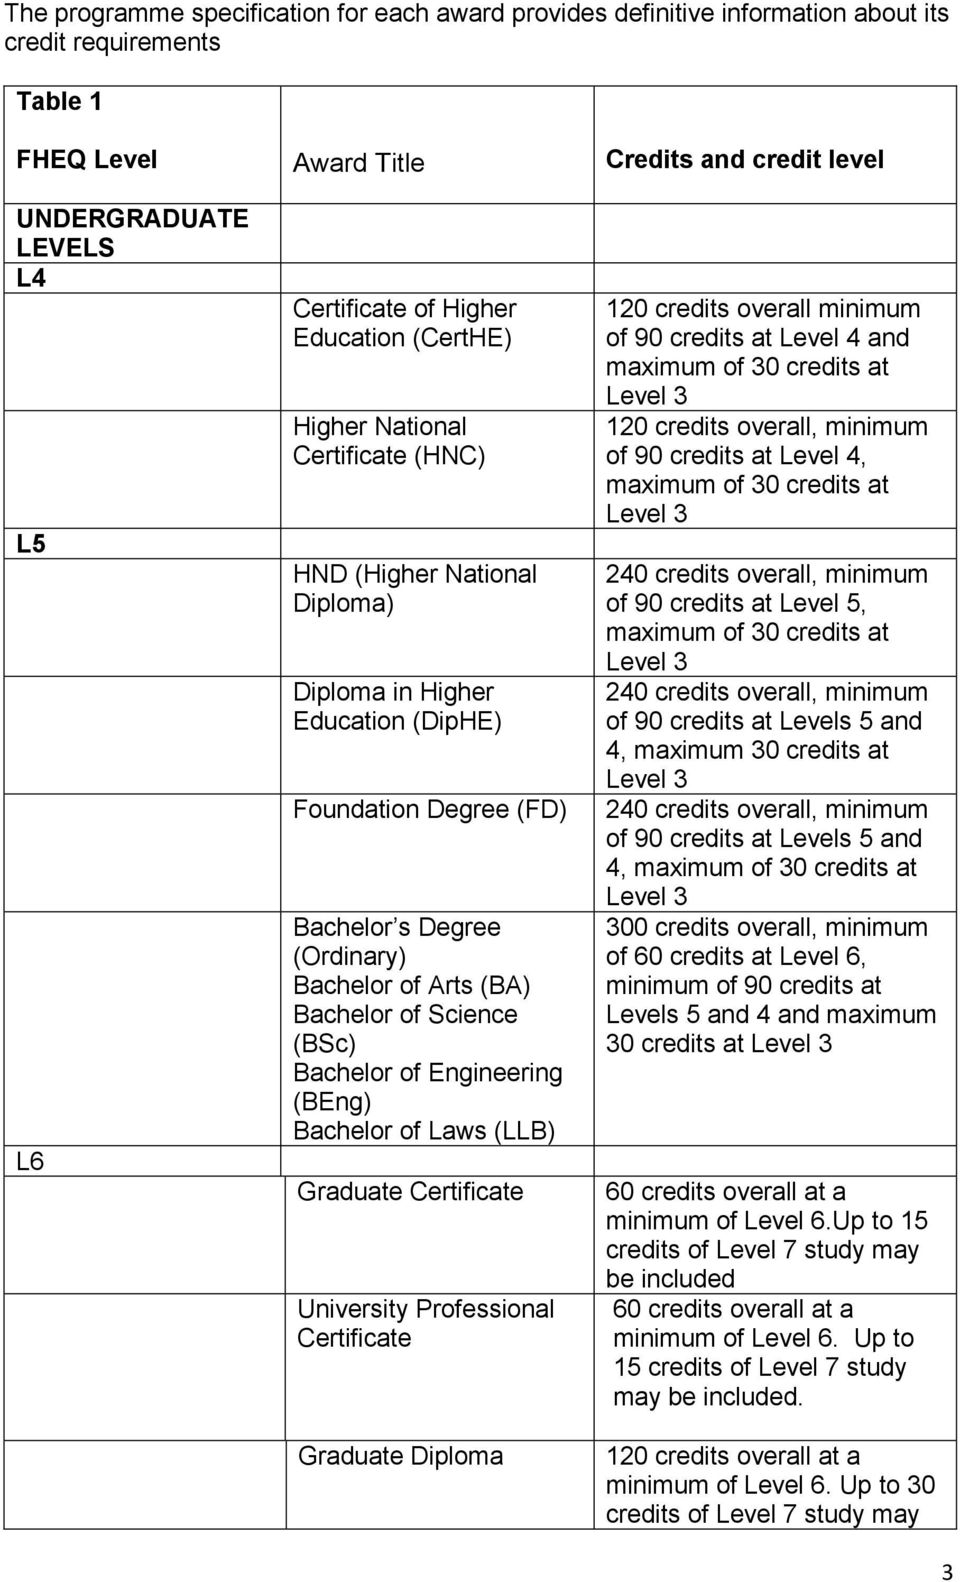 Bachelor of Arts (BA) Bachelor of Science (BSc) Bachelor of Engineering (BEng) Bachelor of Laws (LLB) Graduate Certificate University Professional Certificate Graduate Diploma 120 credits overall